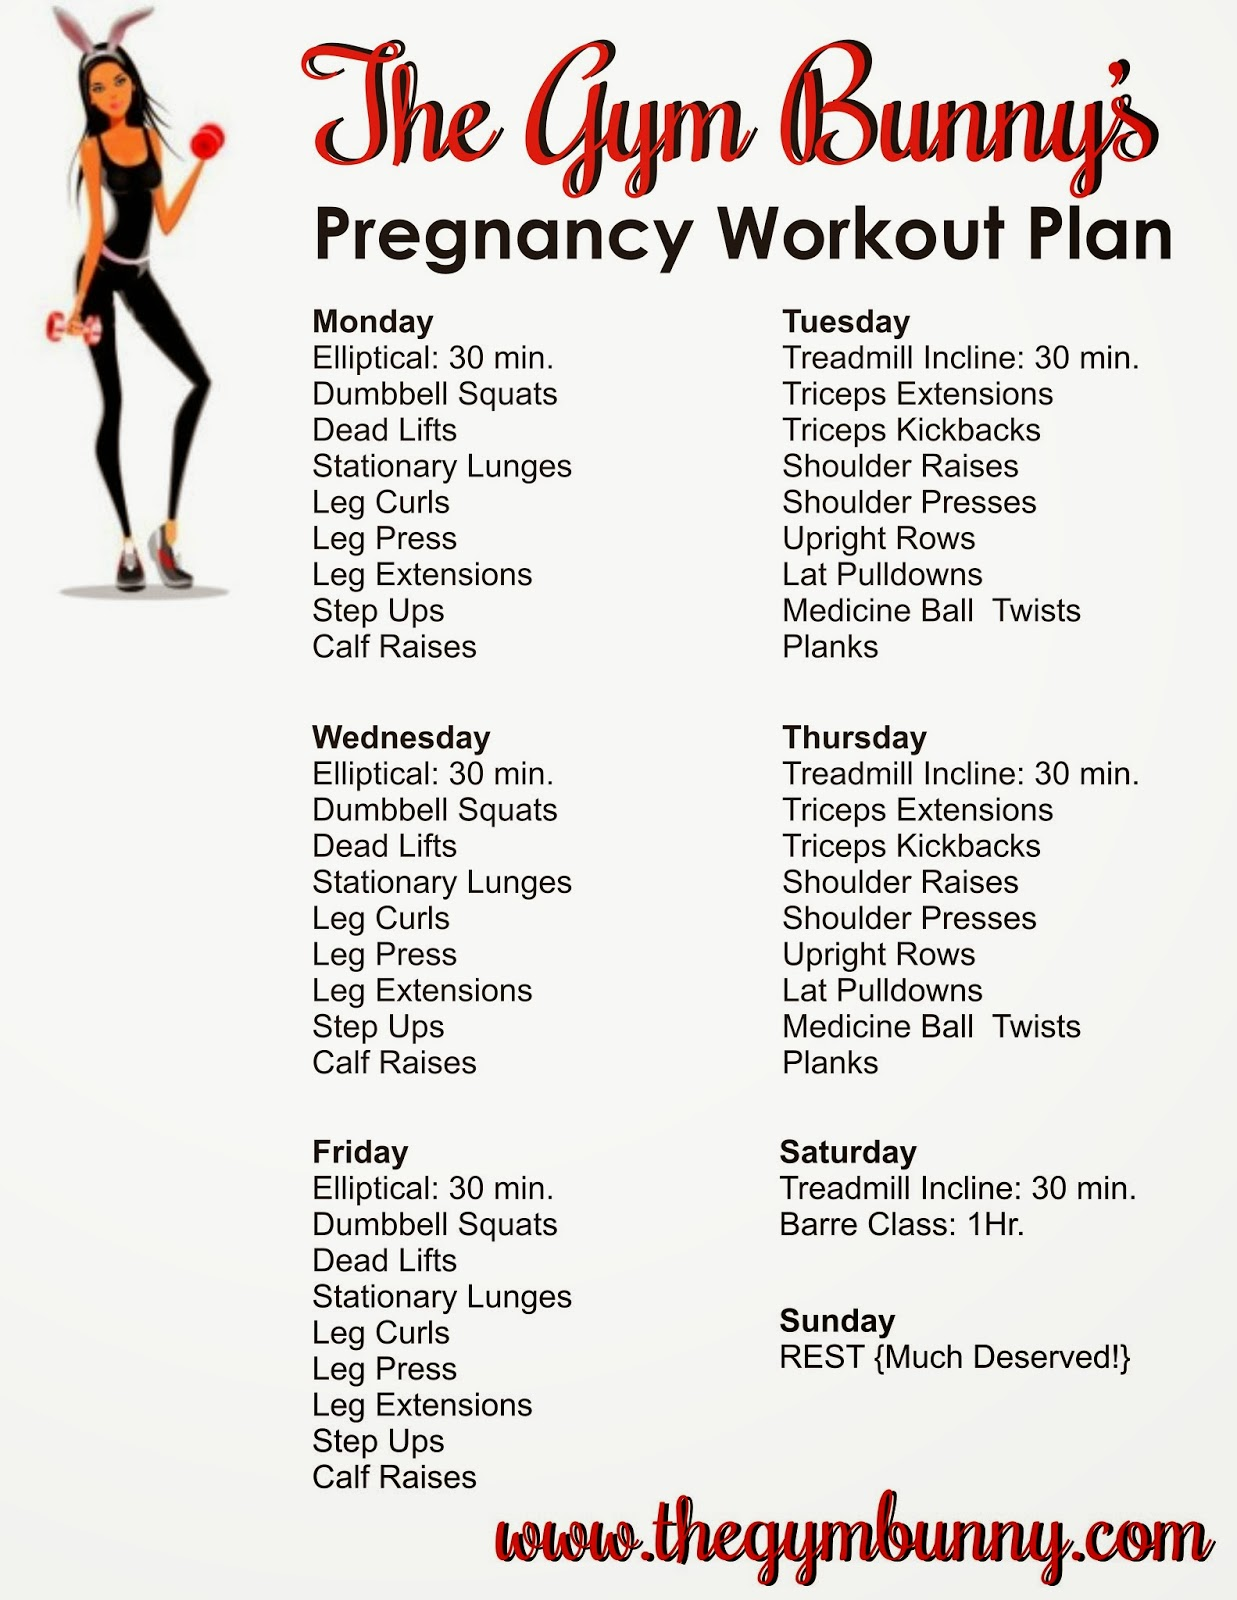 Best Diet Exercise Plan Post Pregnancy - Diet Plan